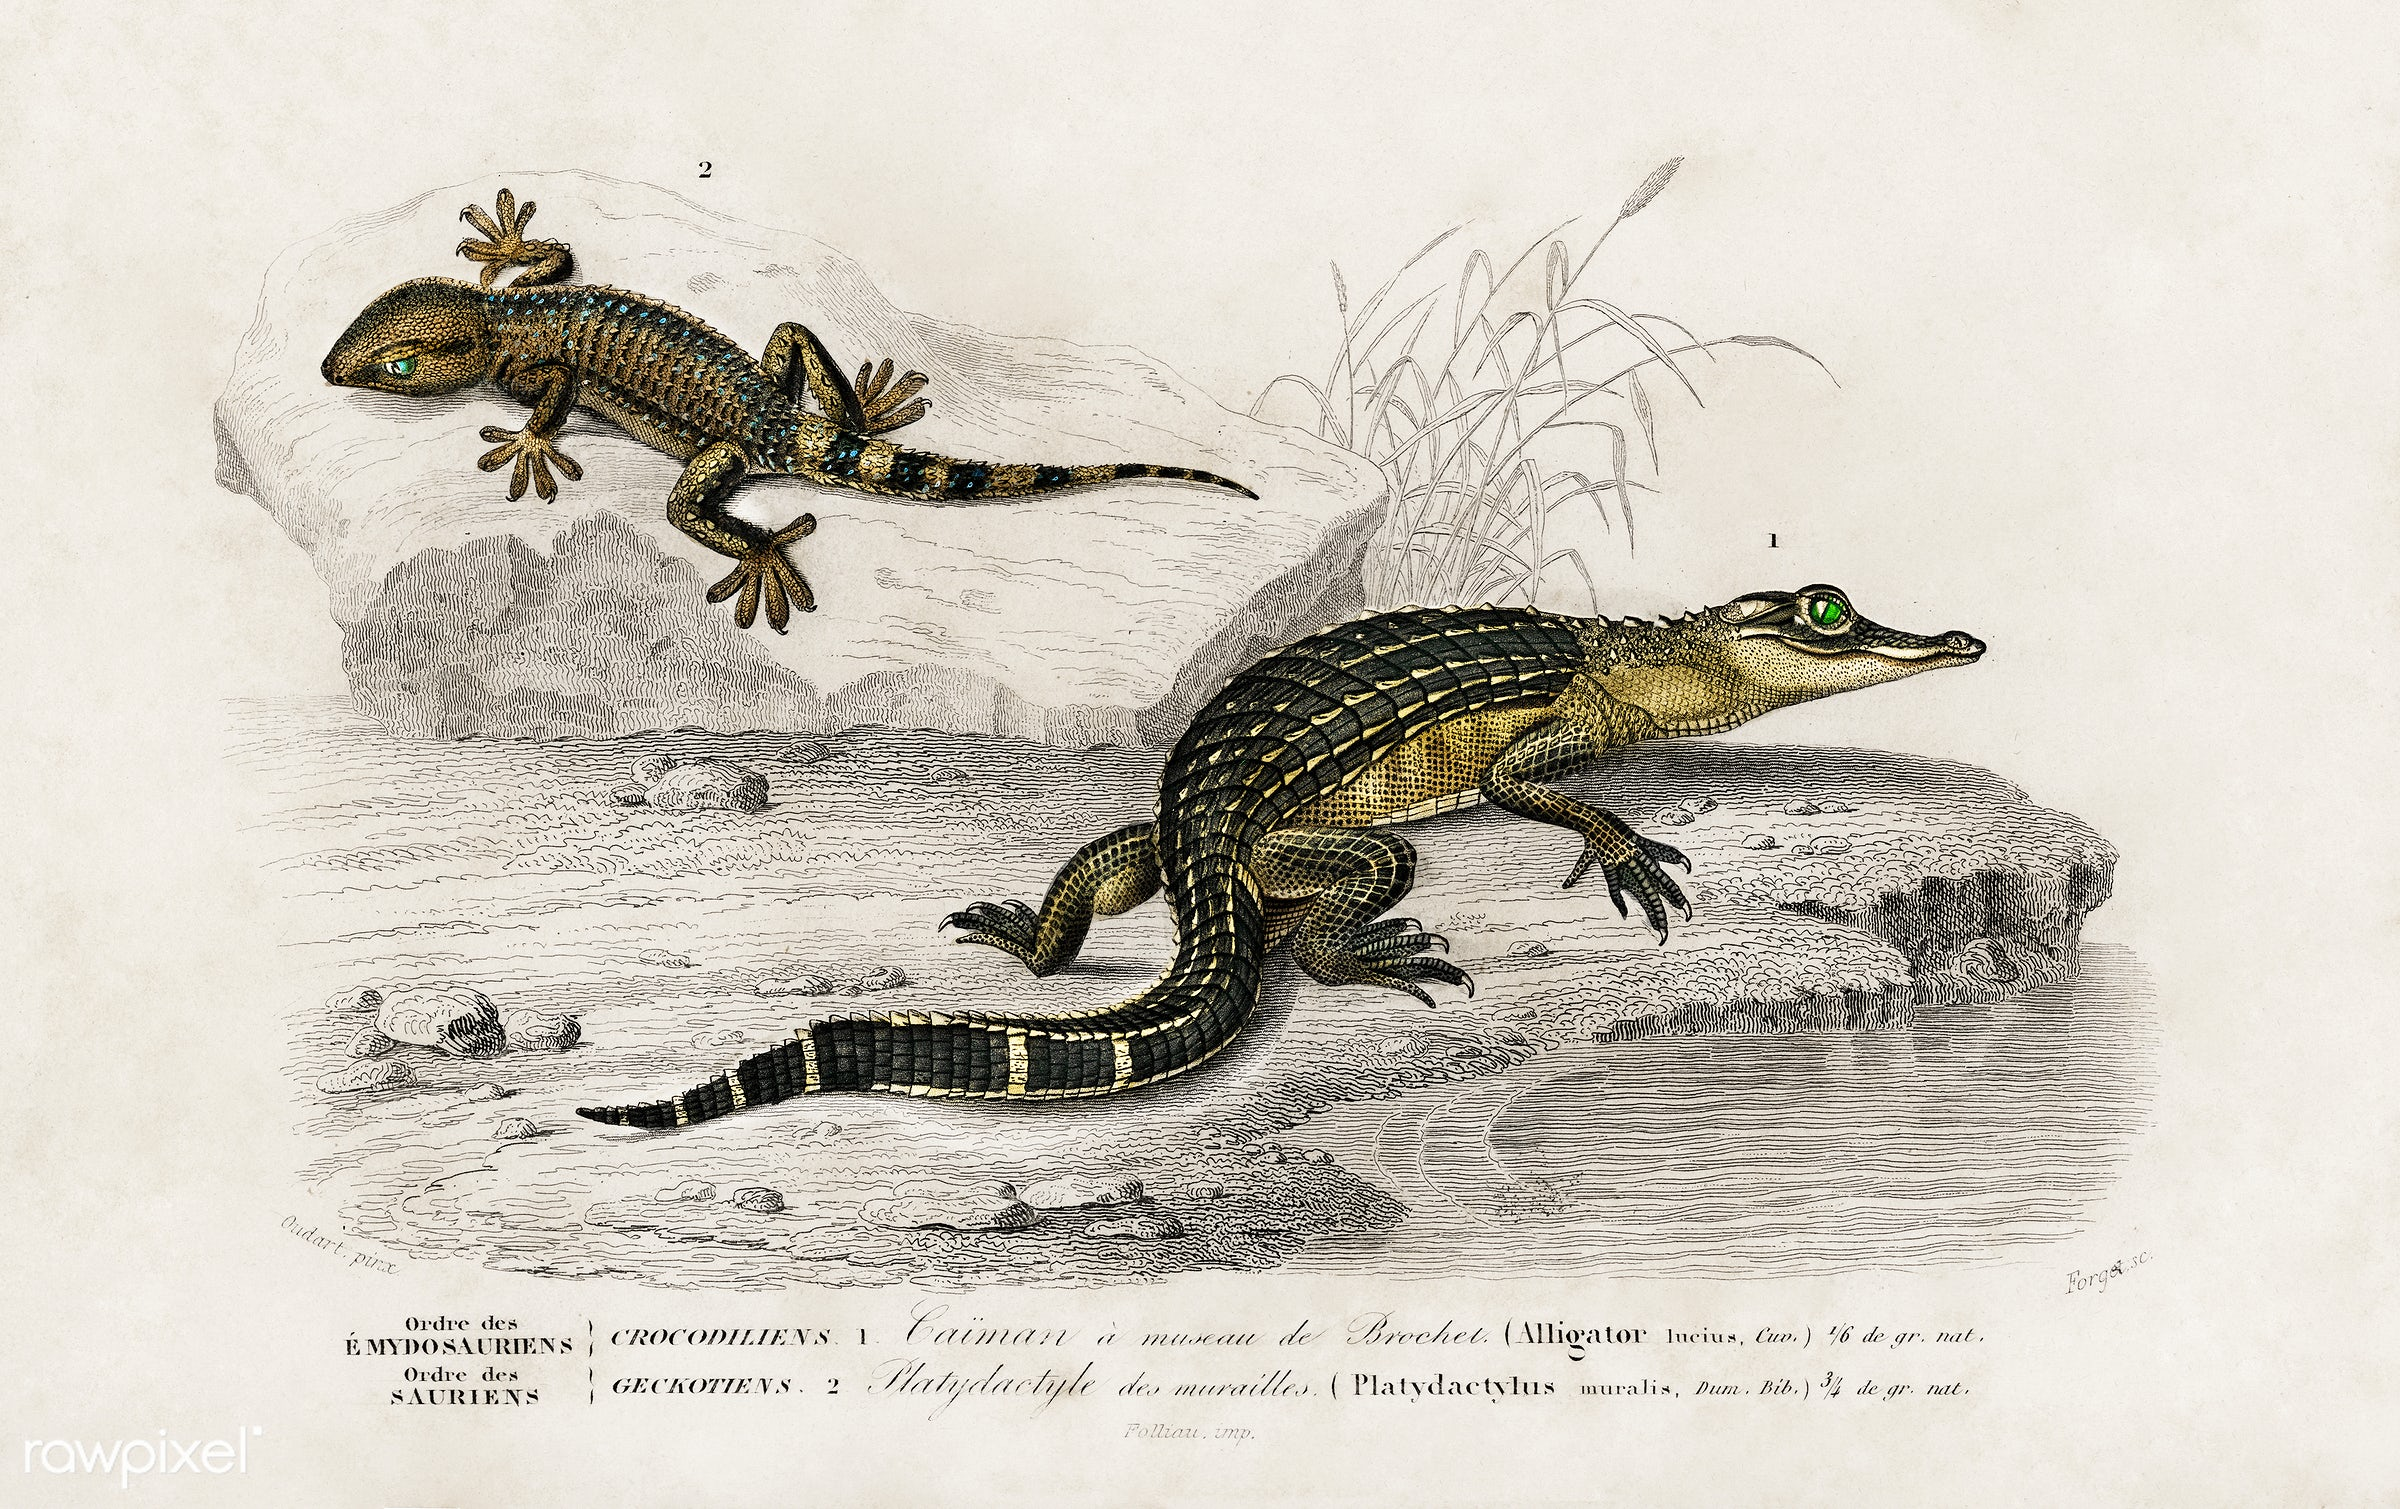 Alligator (Alligator incius) and Lilford'swall lizard (Podarcis lilfordi) illustrated by Charles Dessalines D'...